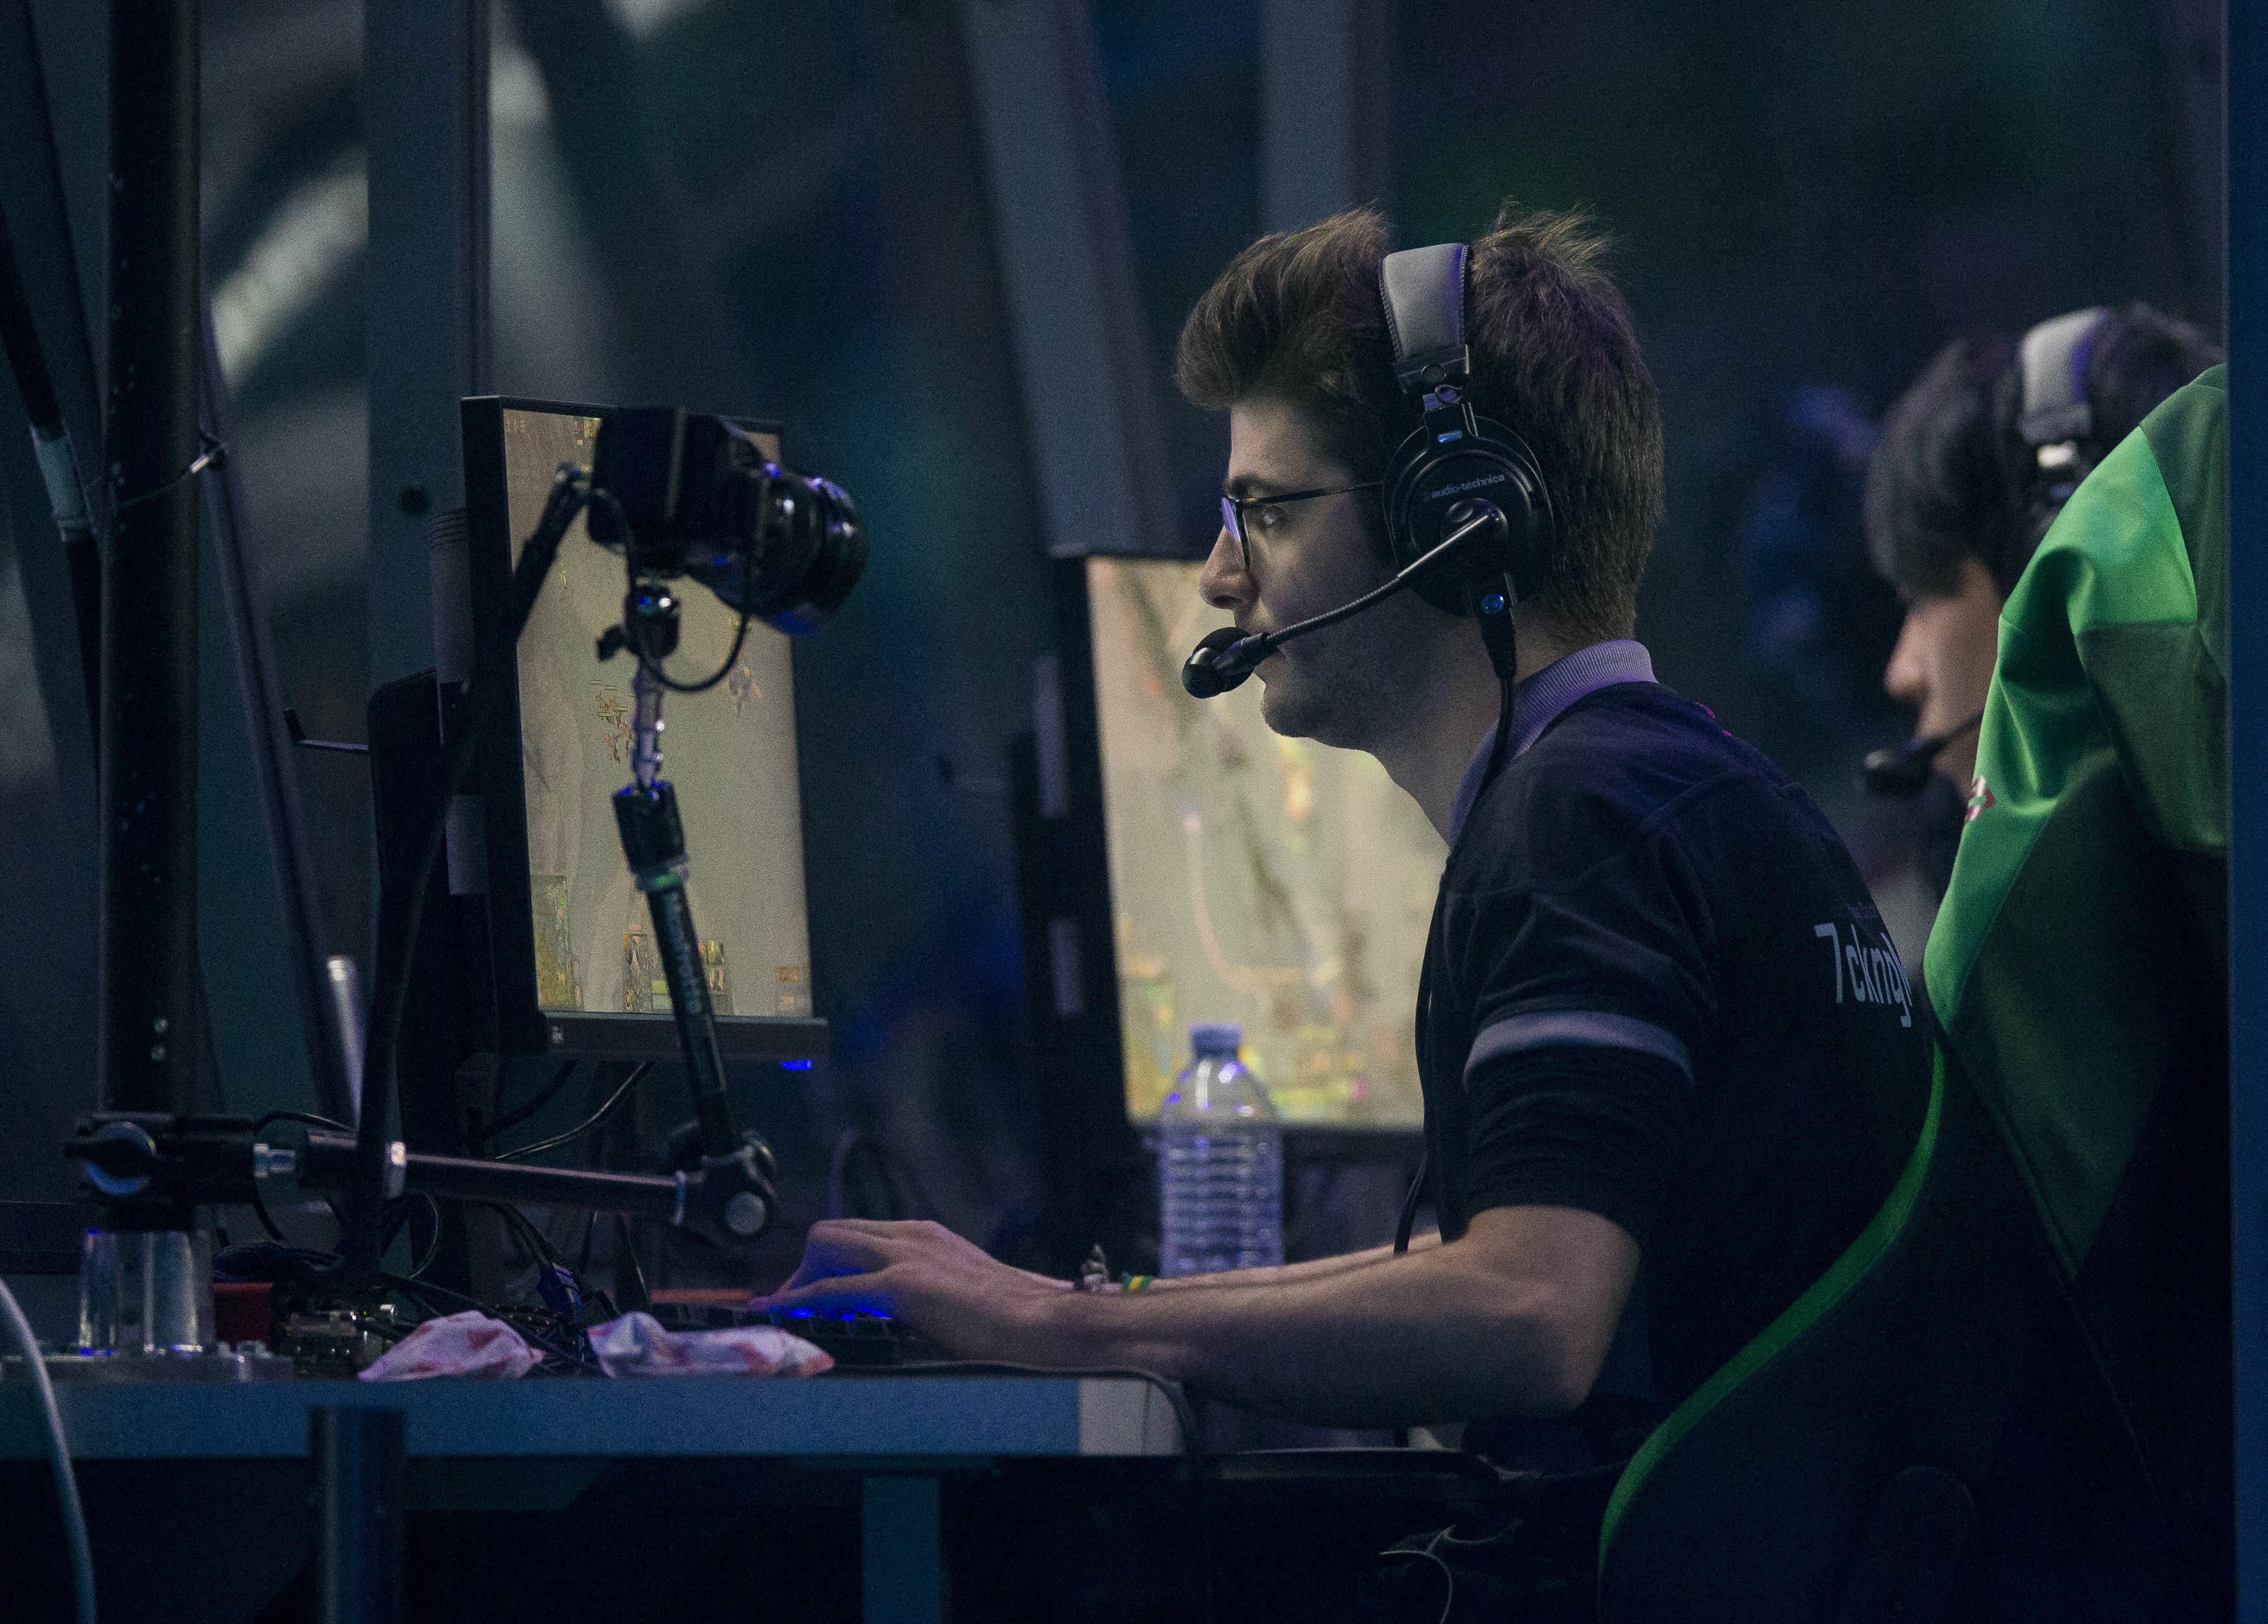 From ESports To Fantasy Sports – Why Gaming Entertainment Has Gone Digital In 2020